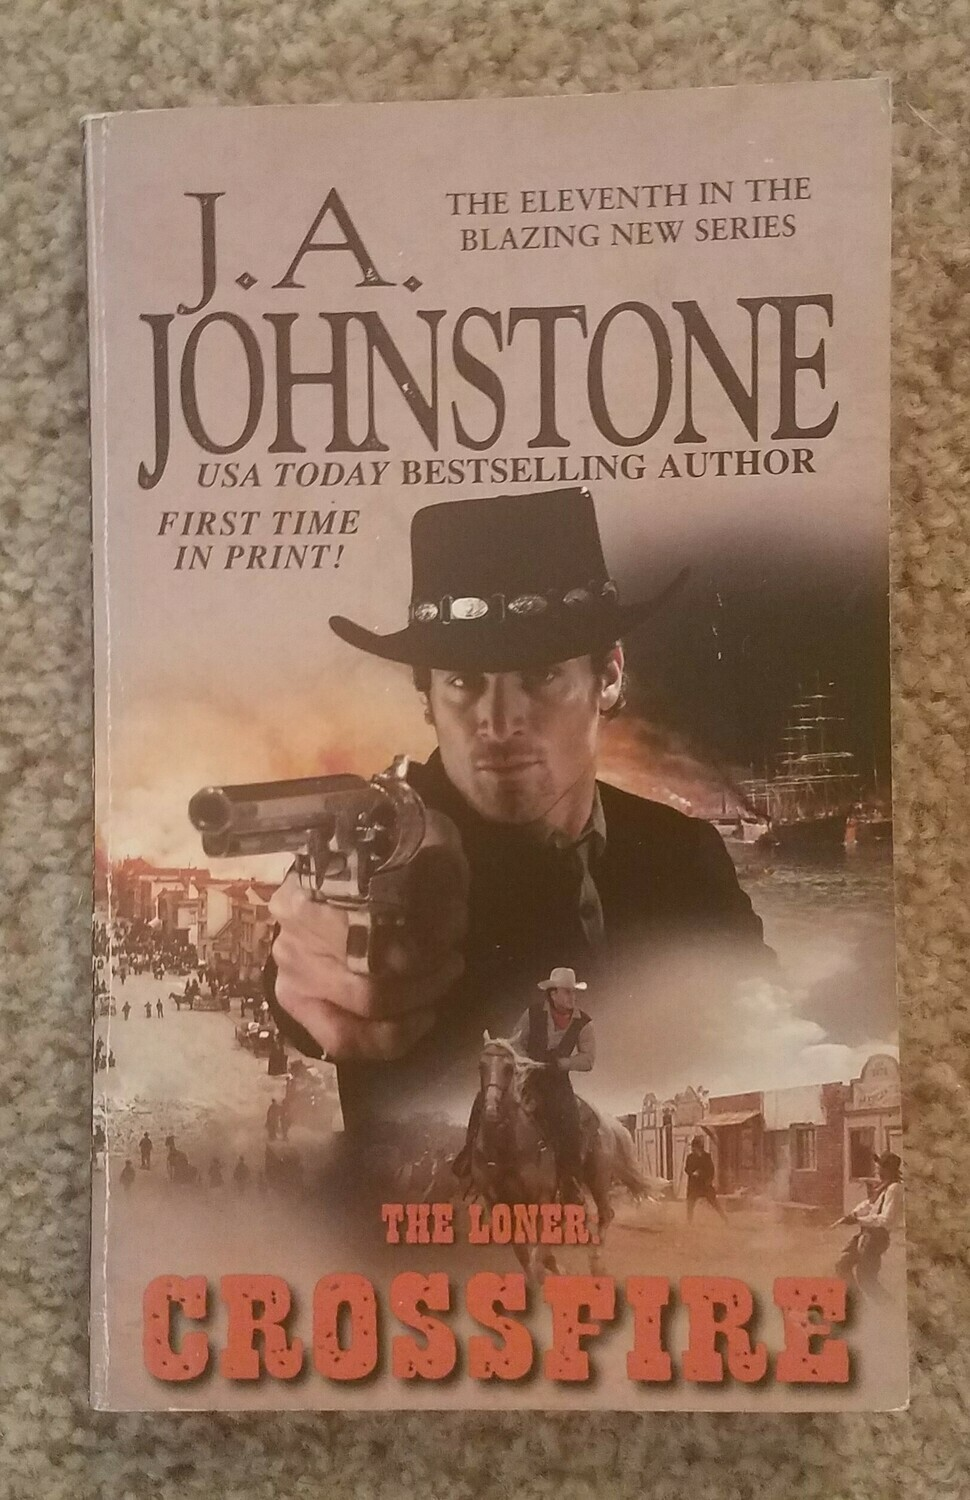 The Londer: Crossfire by J.A. Johnstone